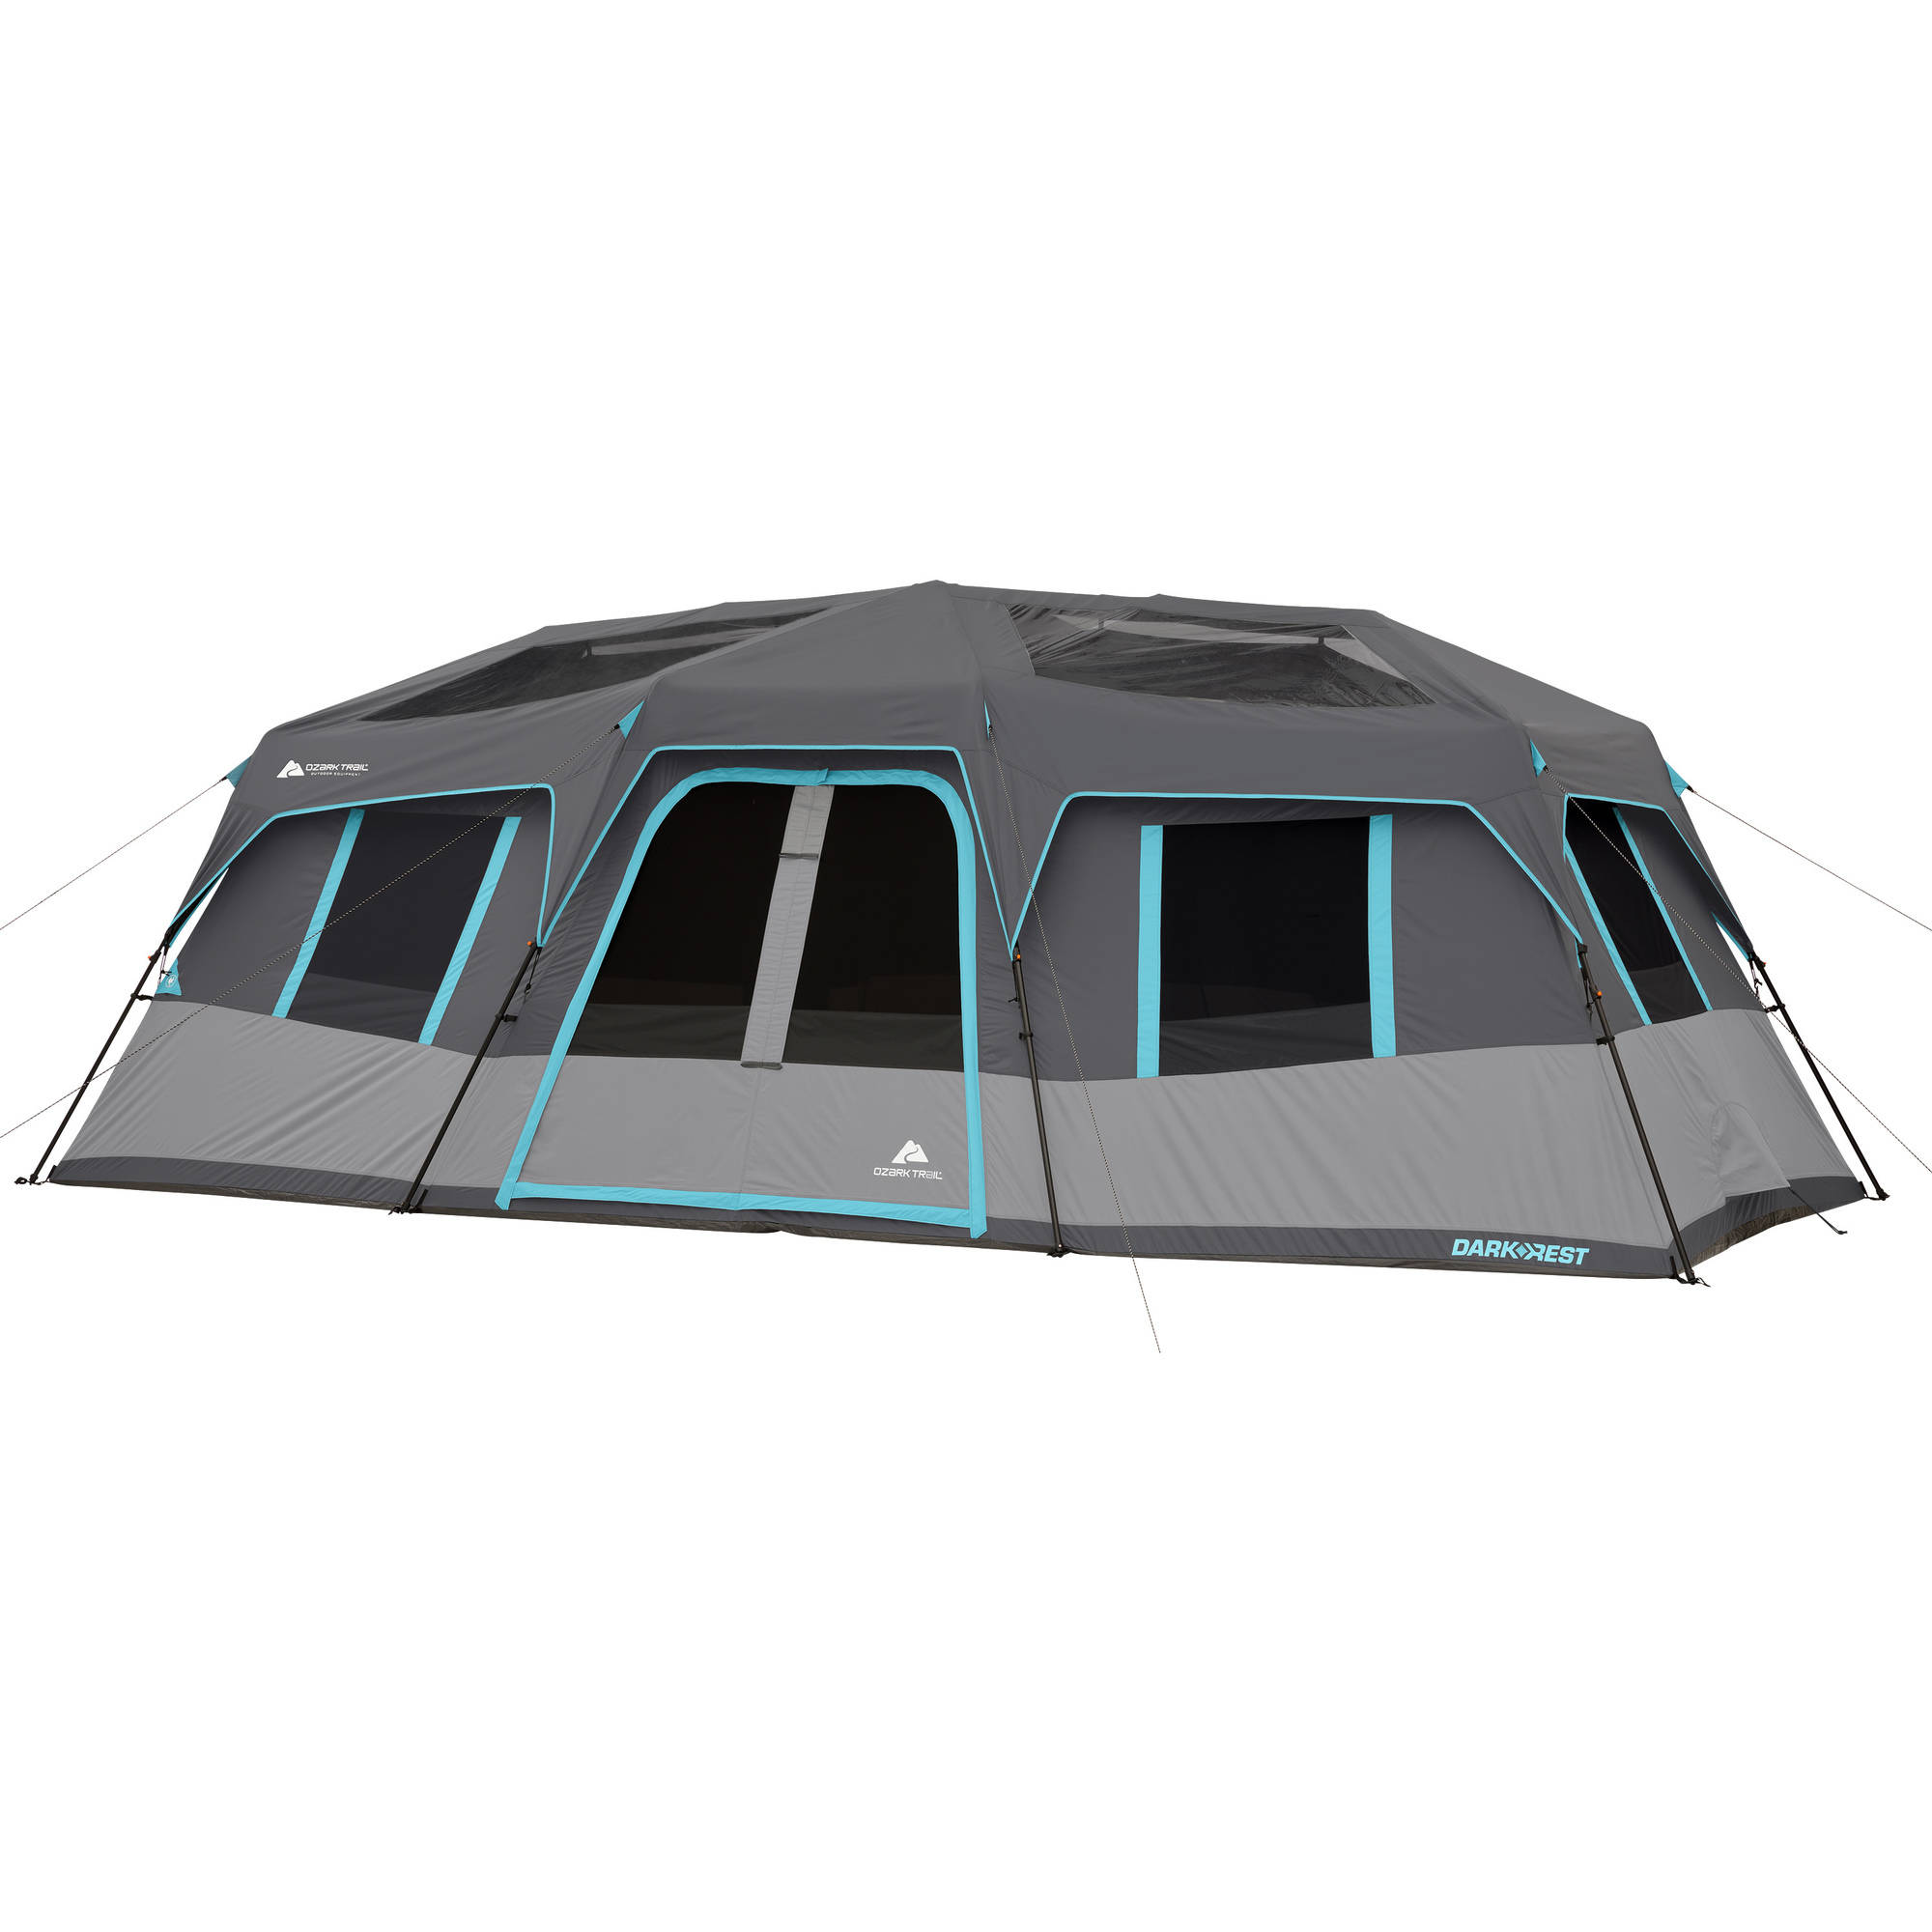 Ozark Trail 20' x 10' Dark Rest Instant Cabin Tent, Sleeps 12 by Bohemian Travel Gear Limited